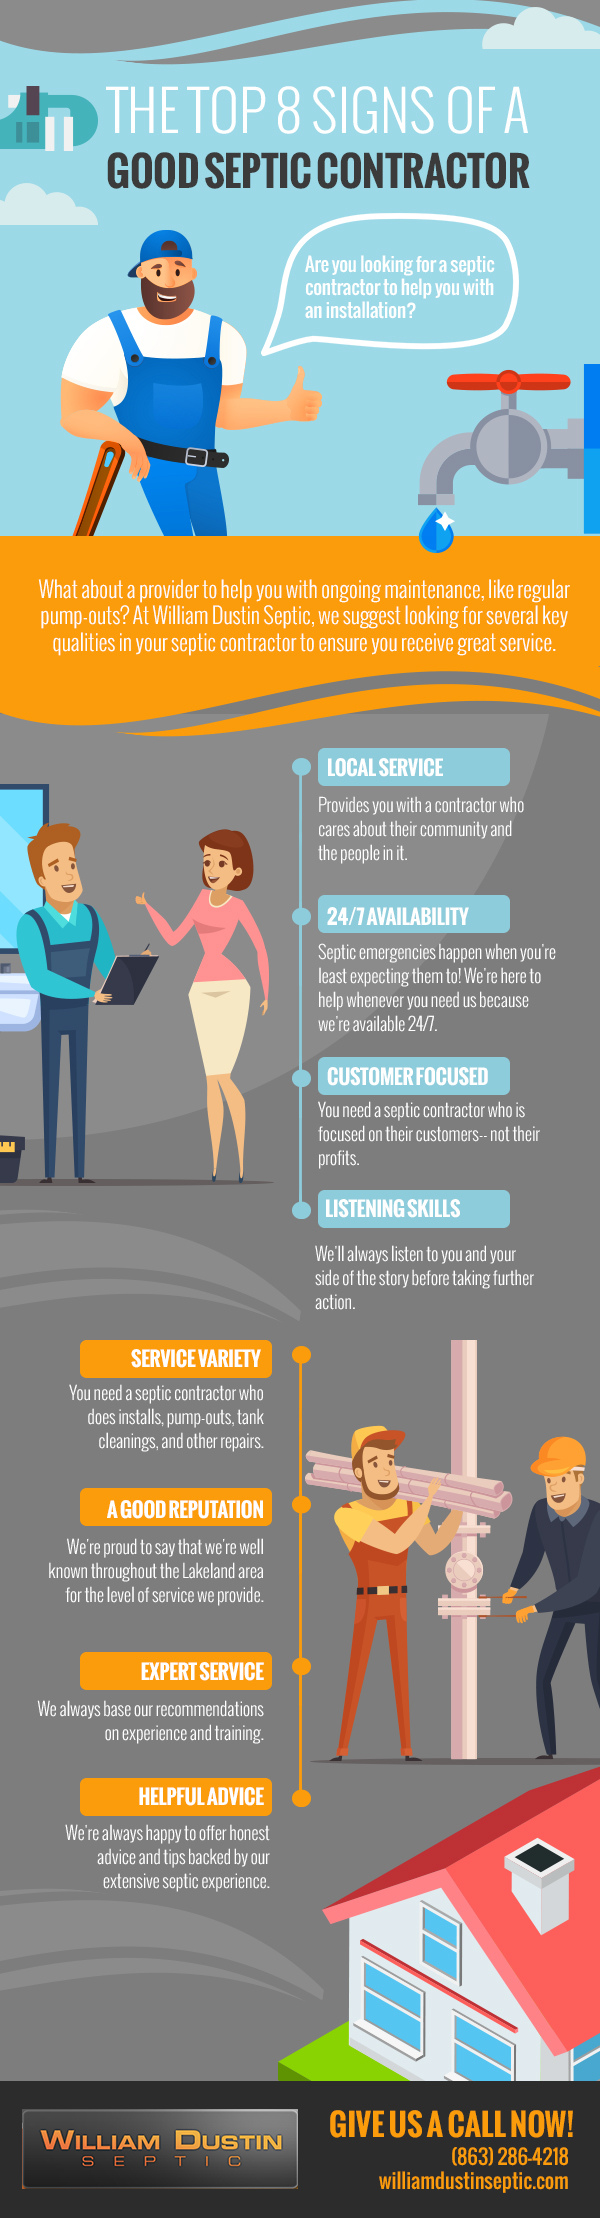 The Top 8 Signs of a Good Septic Contractor [infographic]